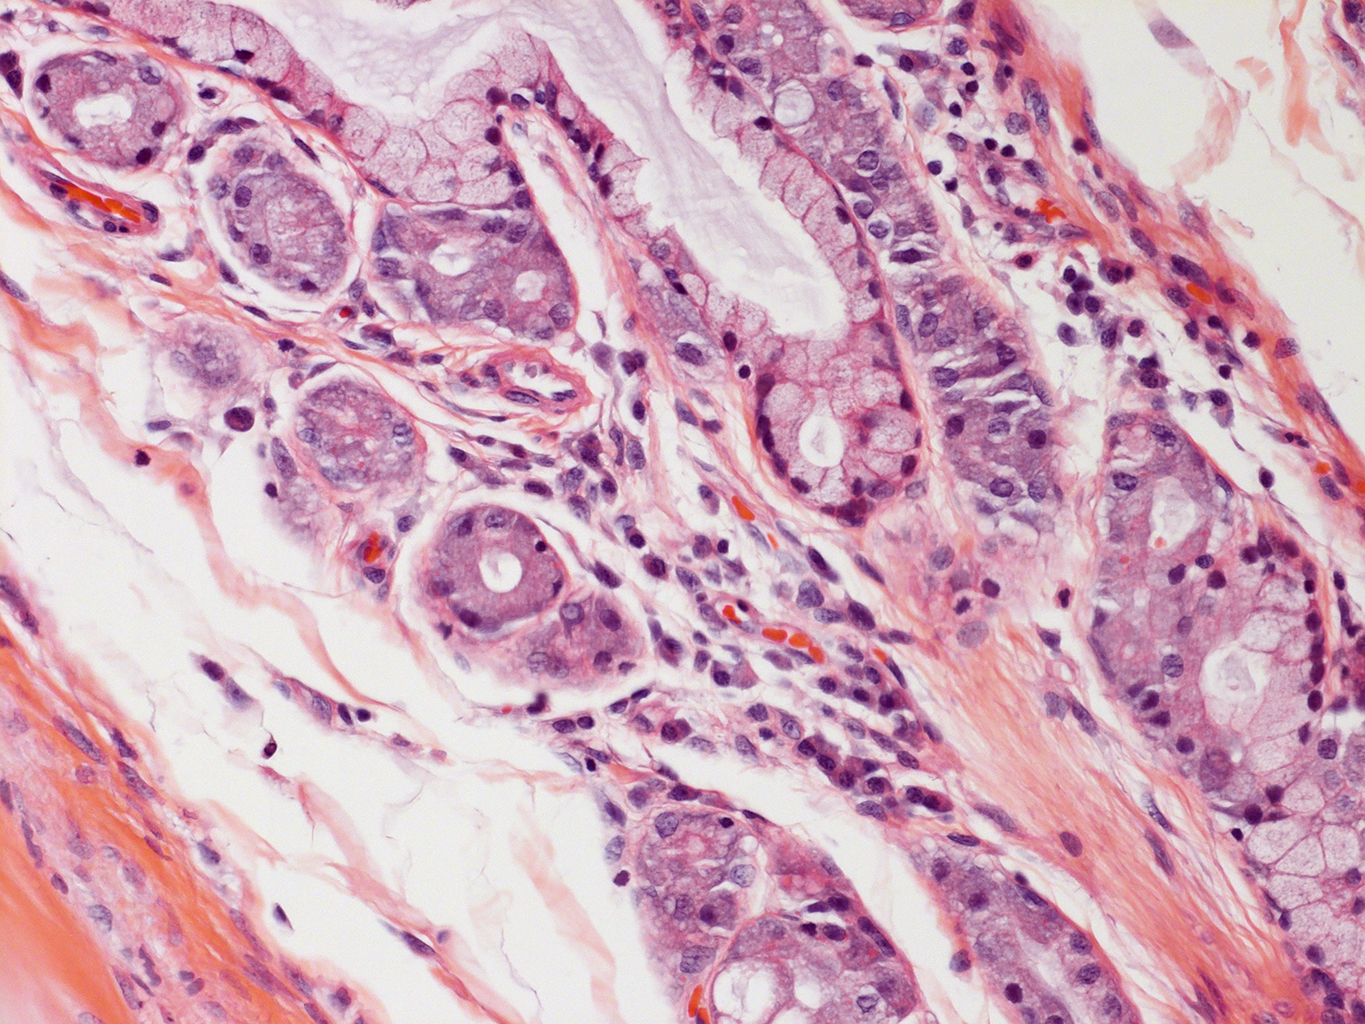 H&E Staining of 24 Year-Old Human Donor D071-23C2.20